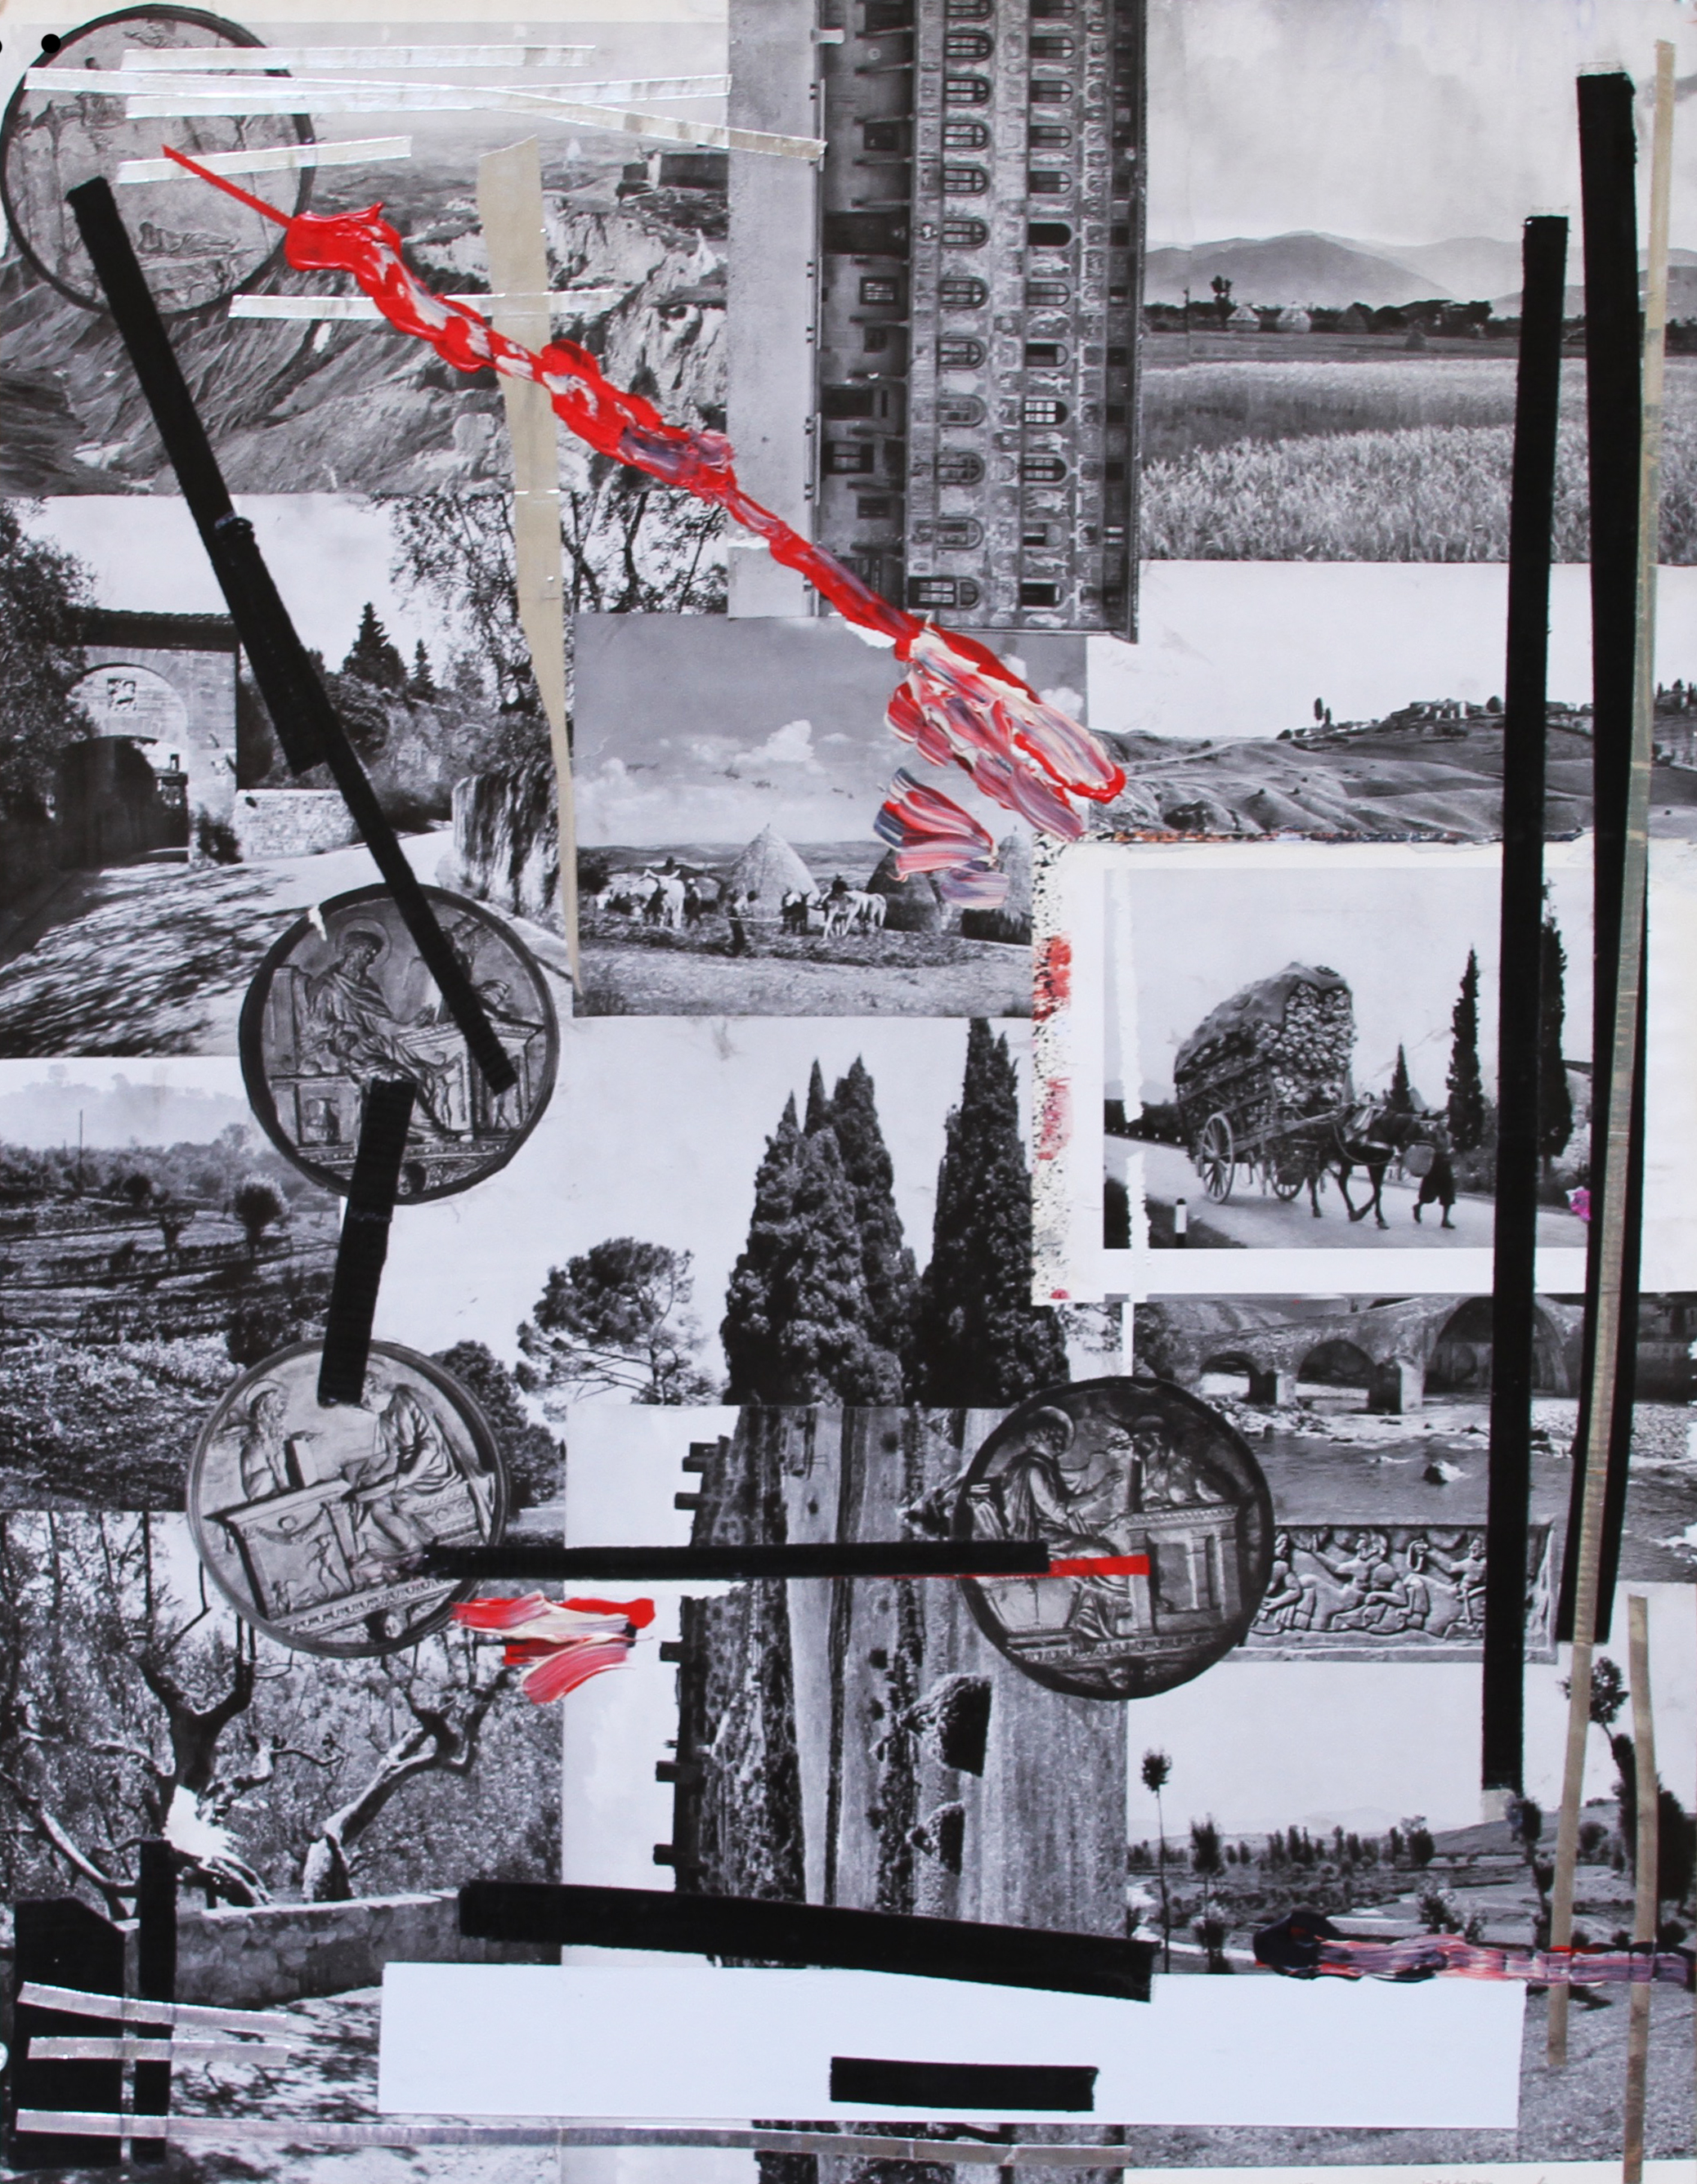 ARRANGEMENT 08 /4 COINS   2015 Acrylic, collage,aluminium and tape on paper 28 x 22 in 71 x 56 cm